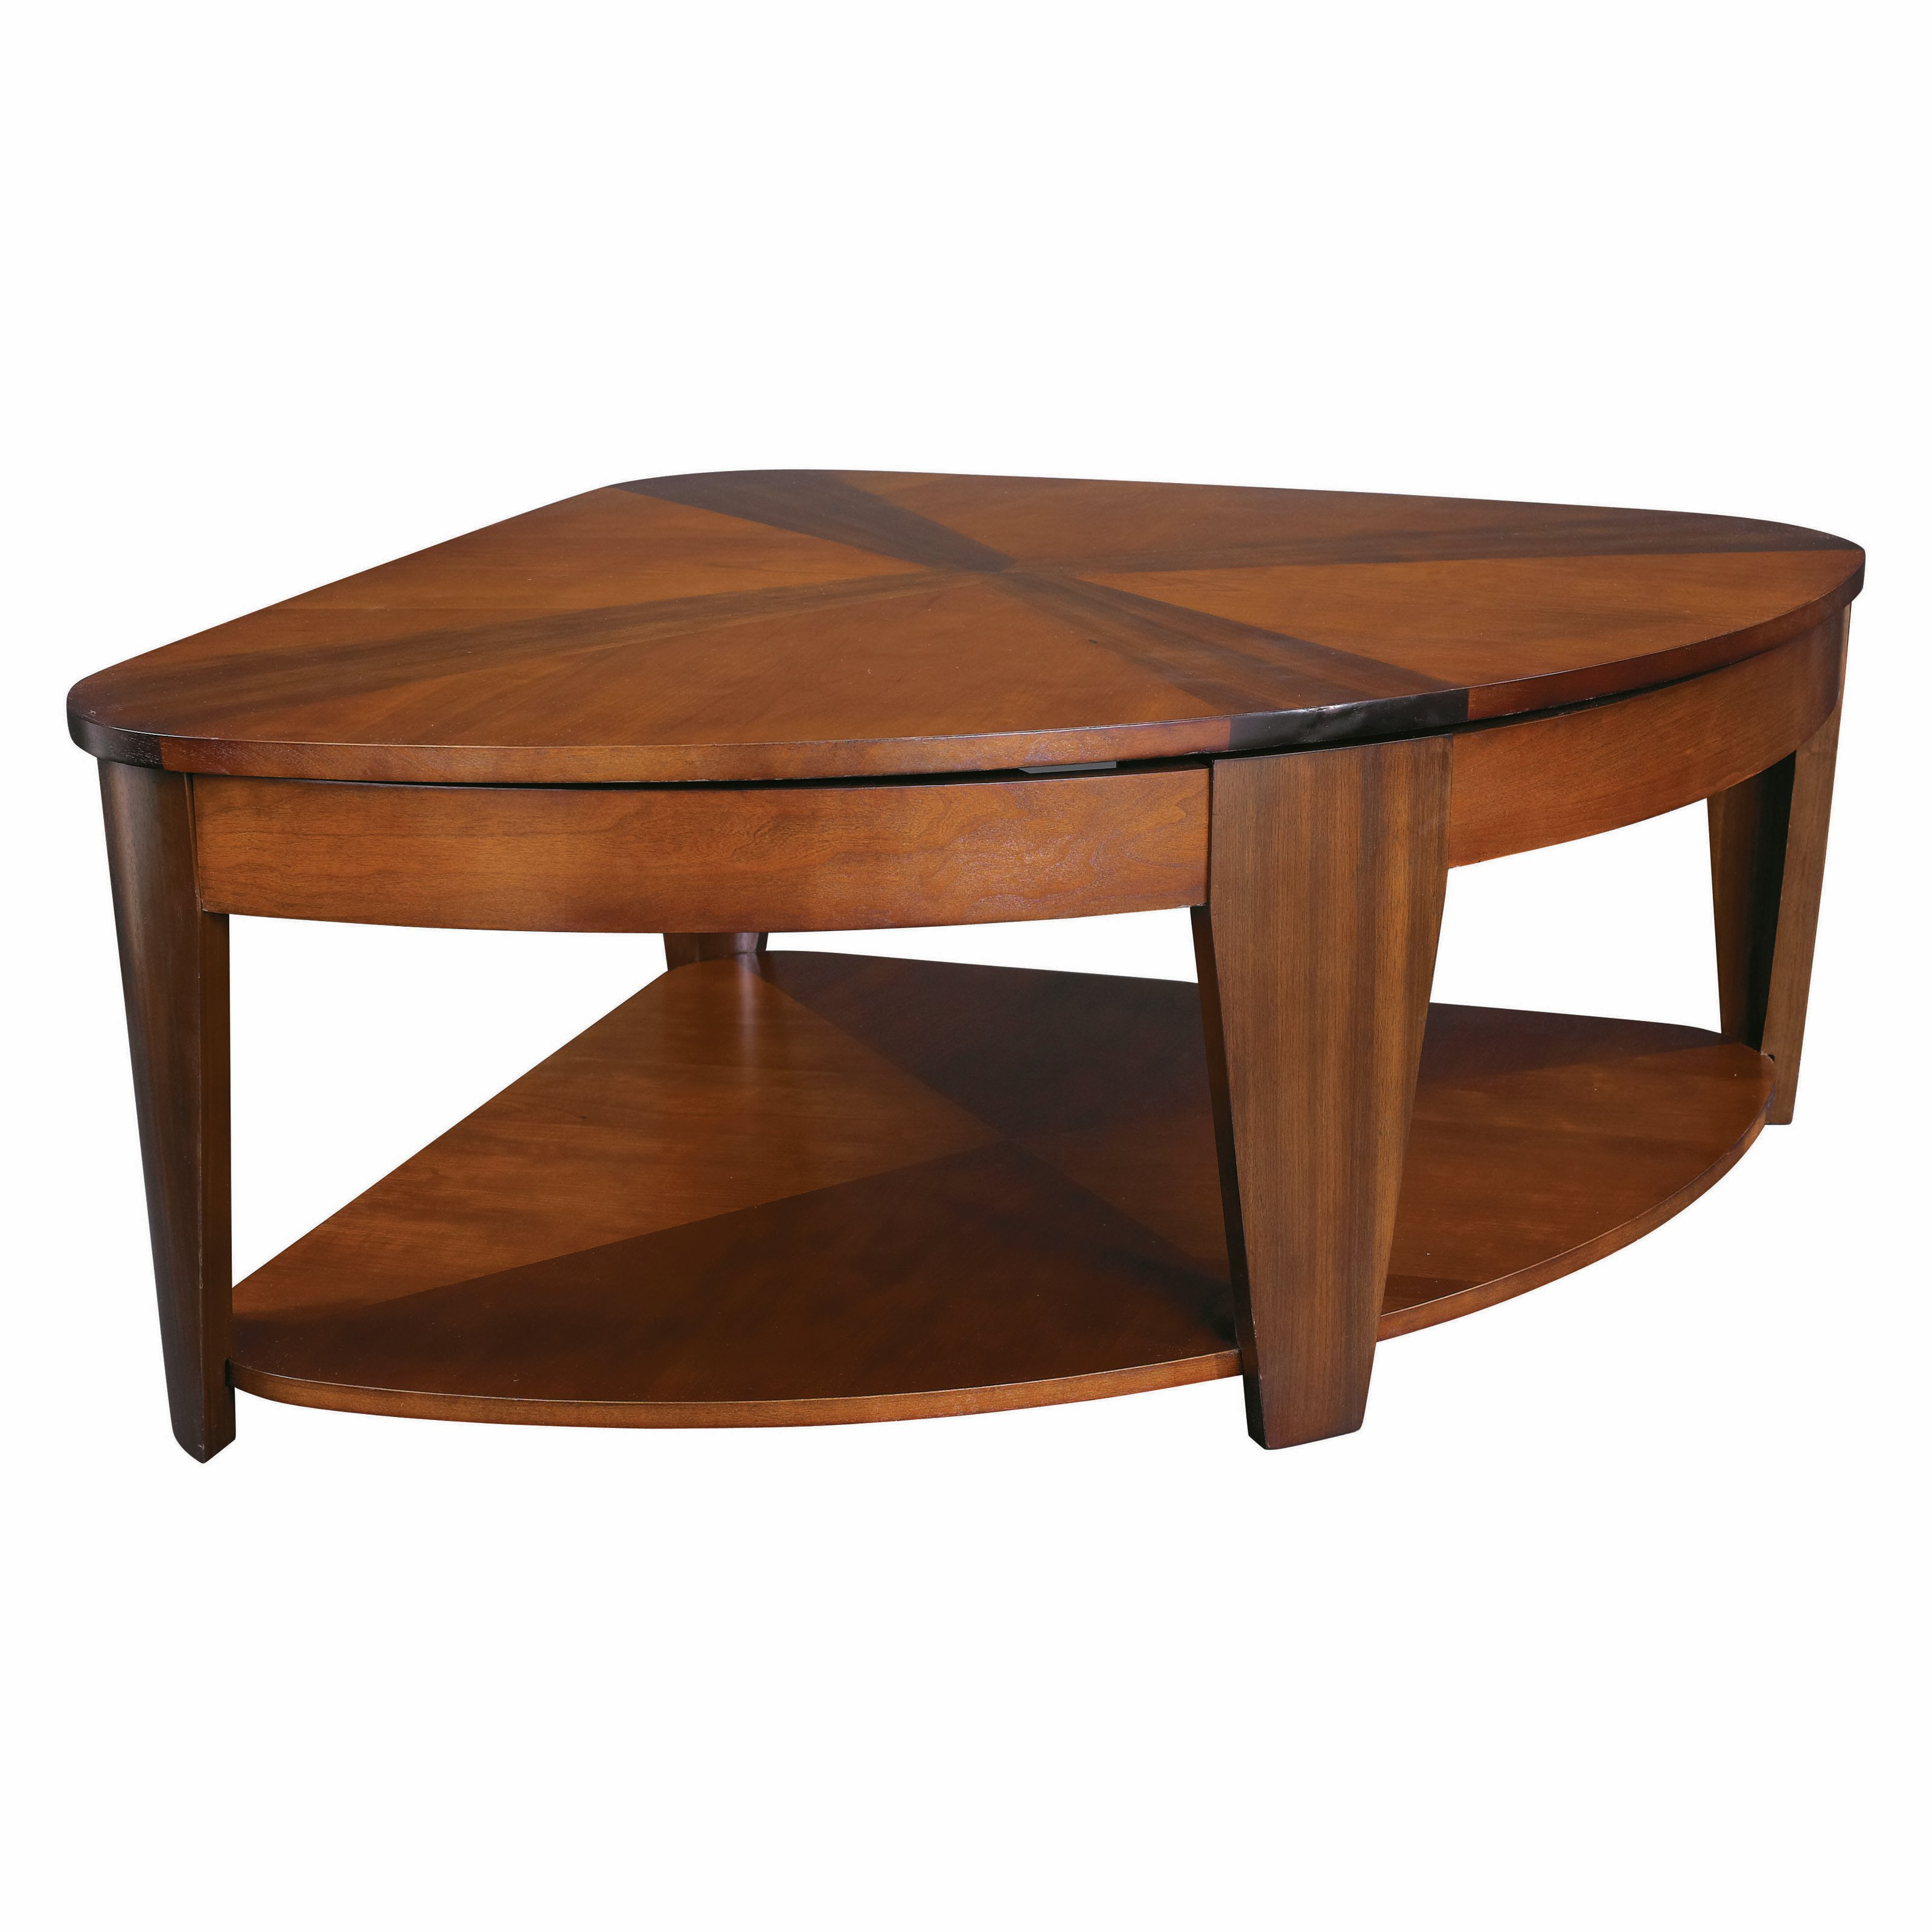 the terrific great round cherry wood end tables idea jockboymusic accent table small square coffee tall skinny rectangle white and gold very sets metal bedside with full size best